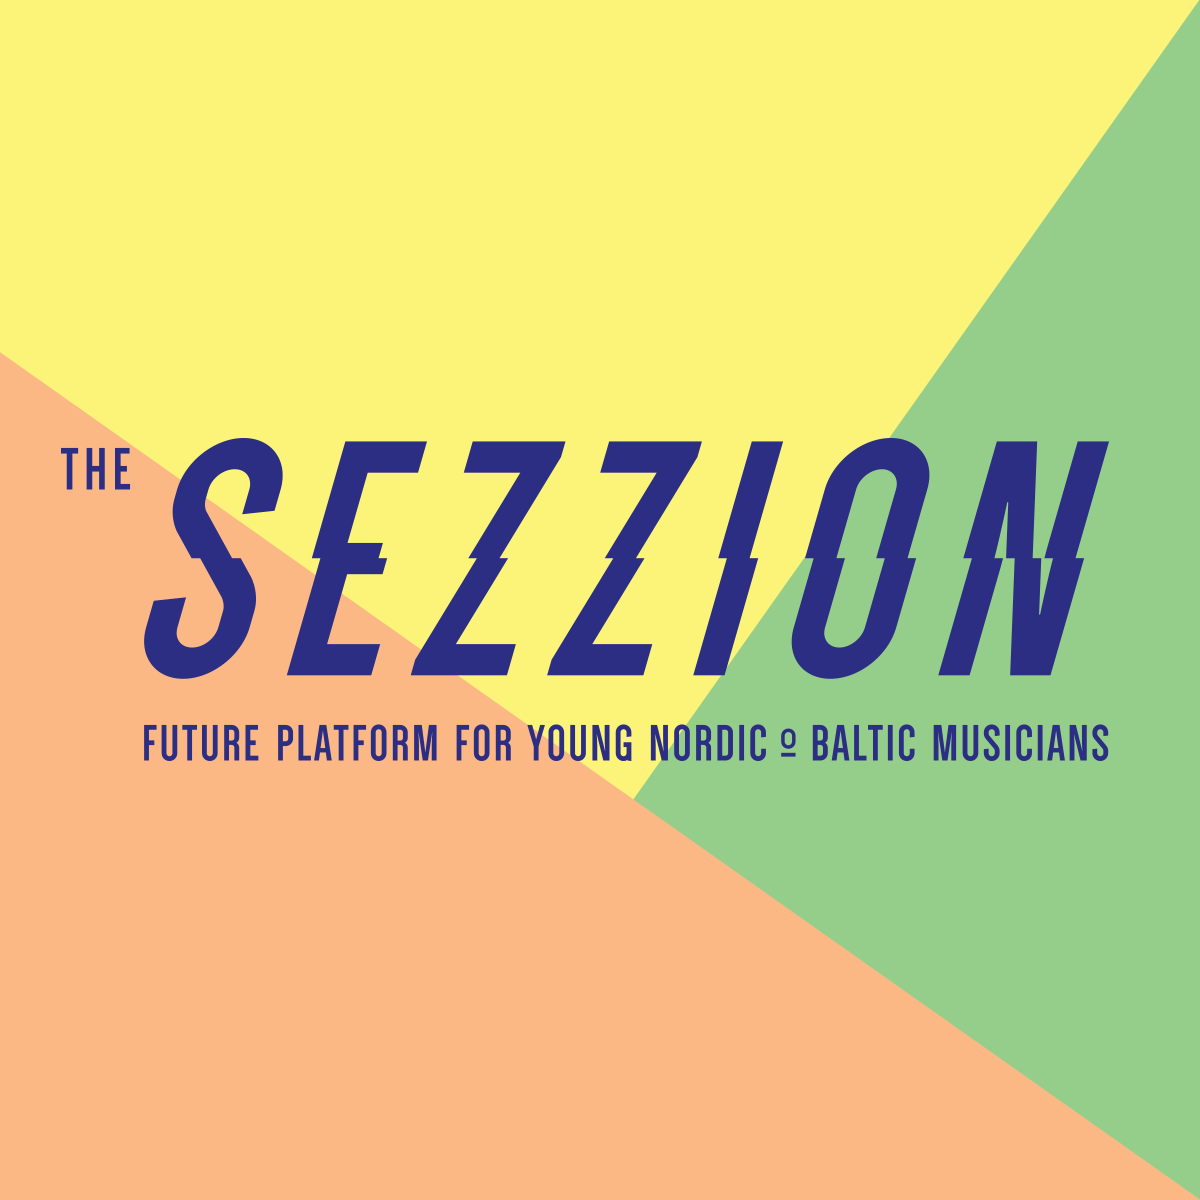 THE SEZZION 2017